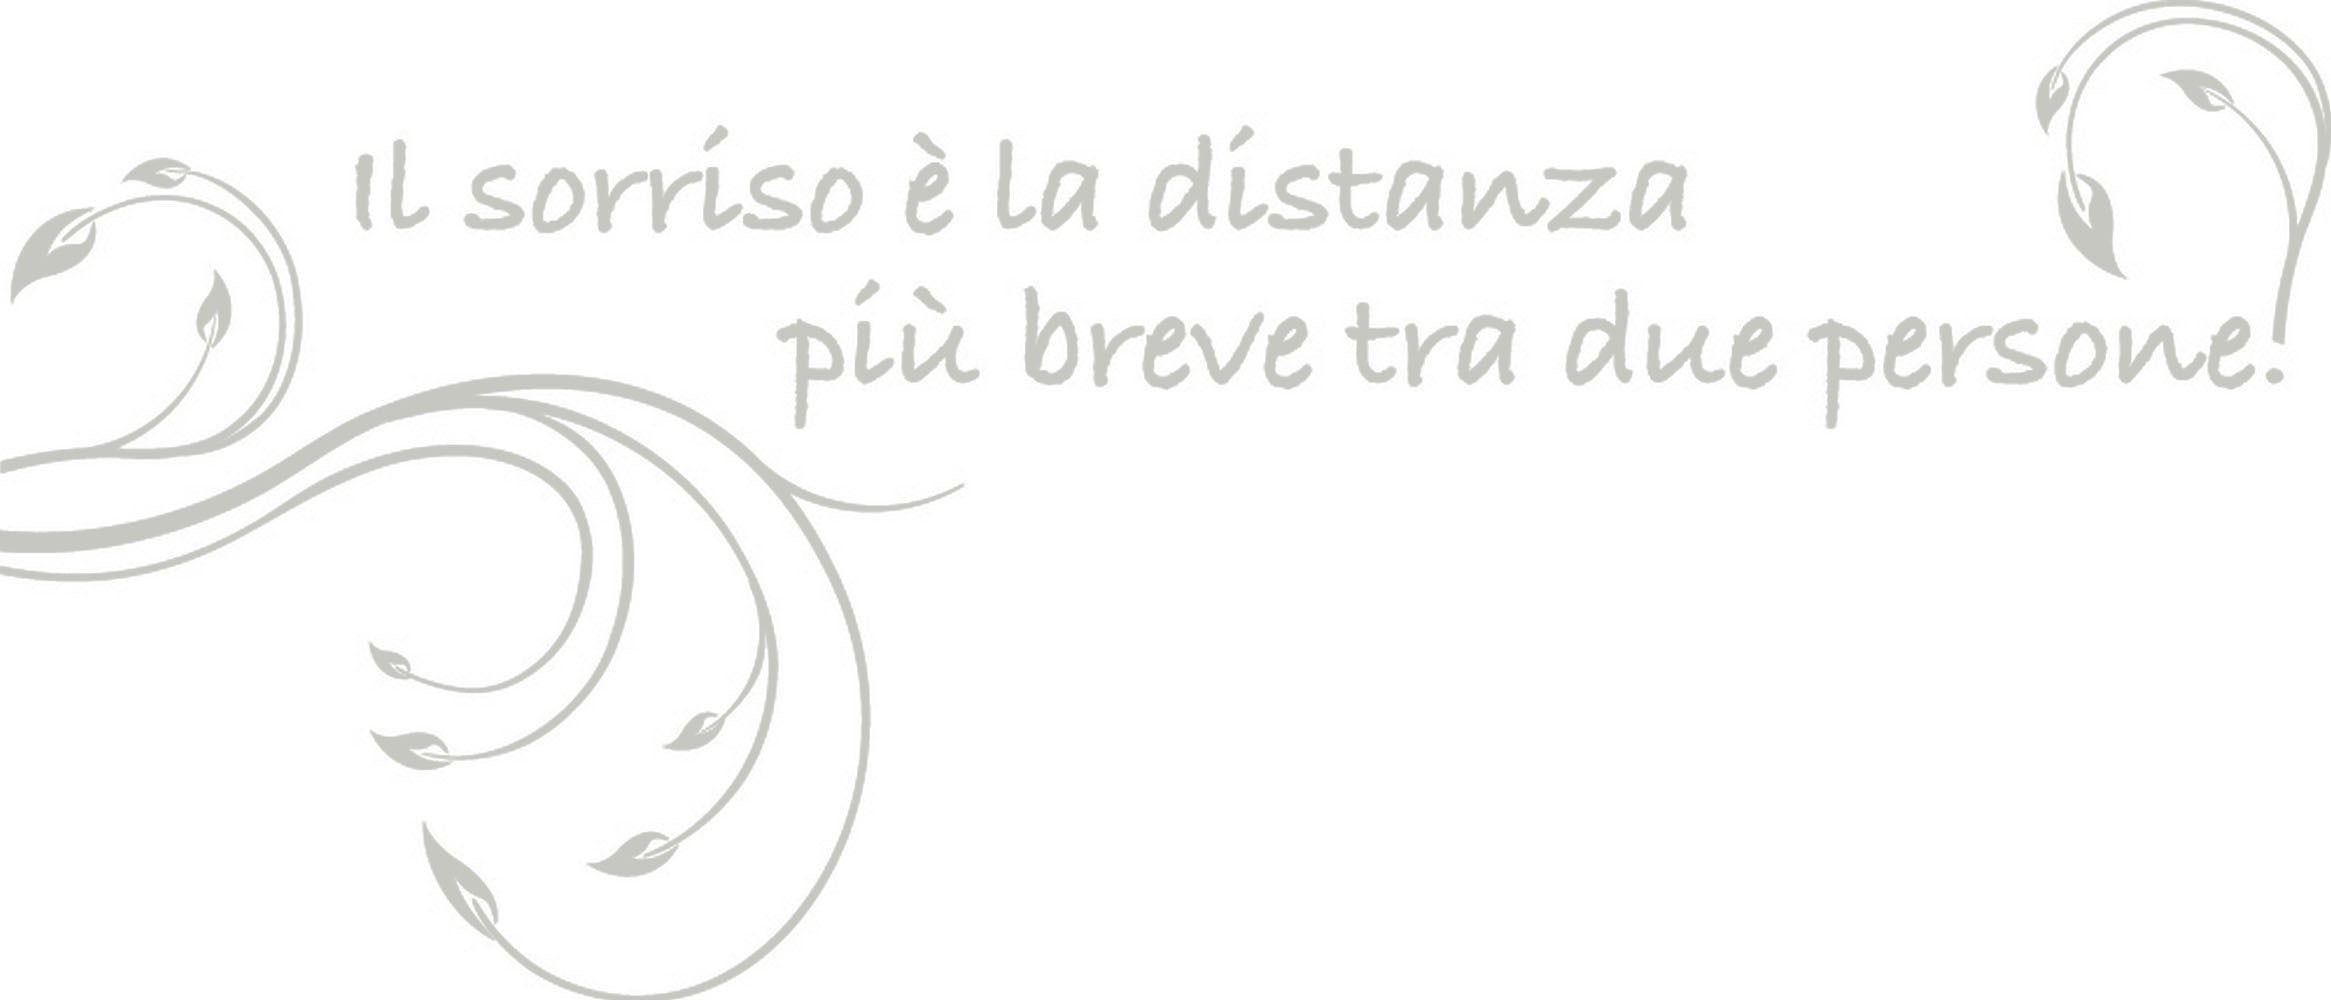 Wall Stickers Il sorriso MyCollection